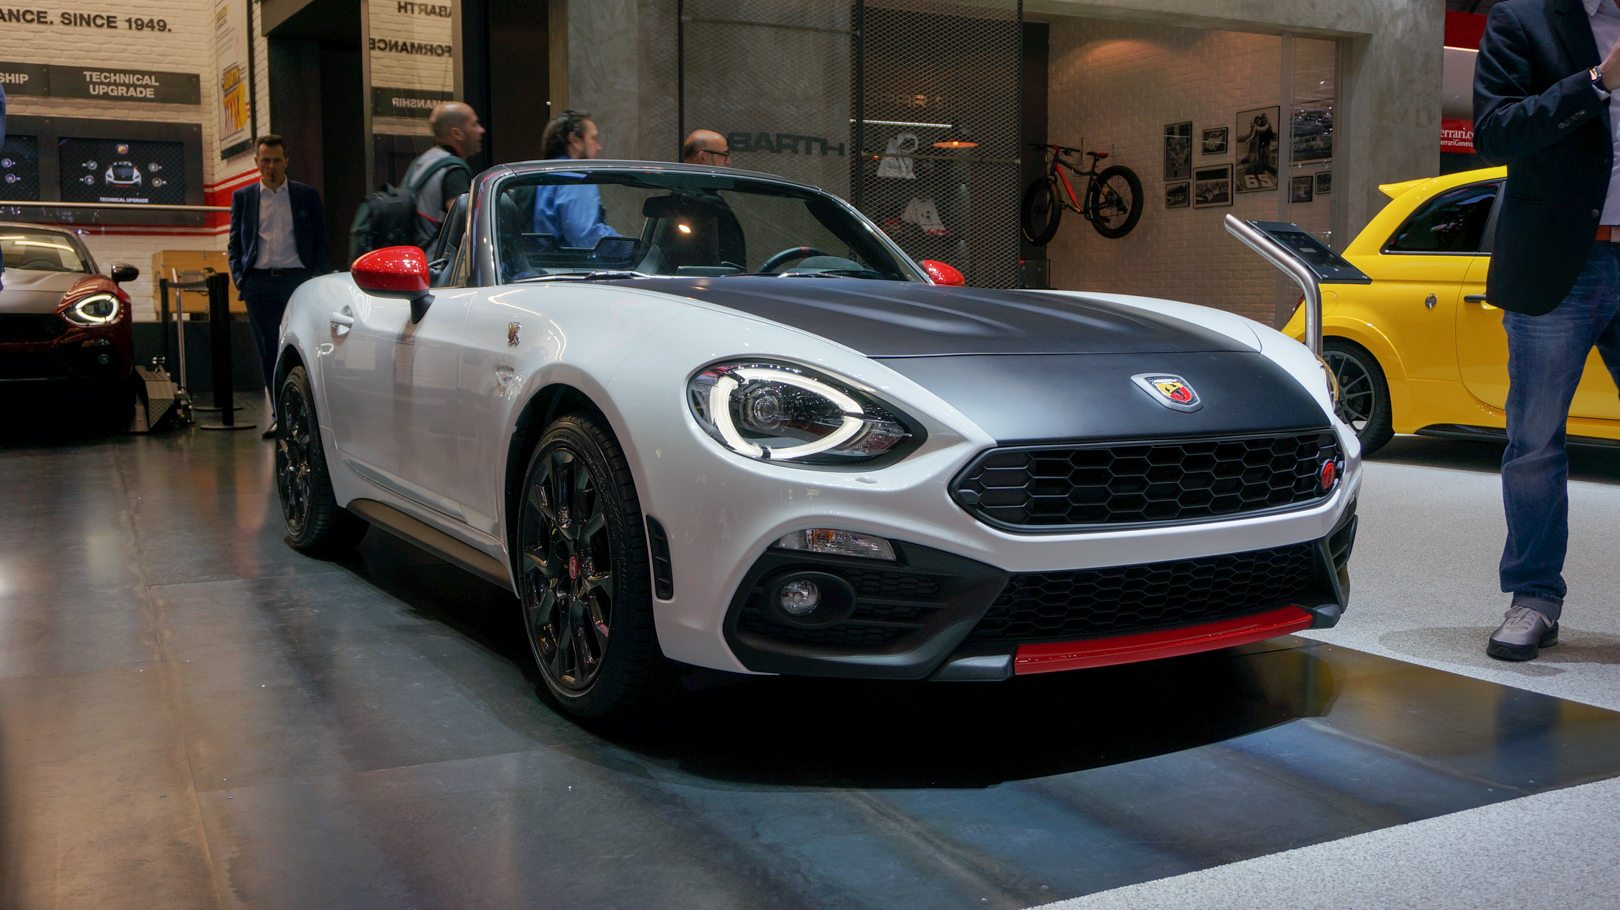 abarth 124 spider debuts alongside 300 horsepower rally prototype pictures page 21 roadshow. Black Bedroom Furniture Sets. Home Design Ideas